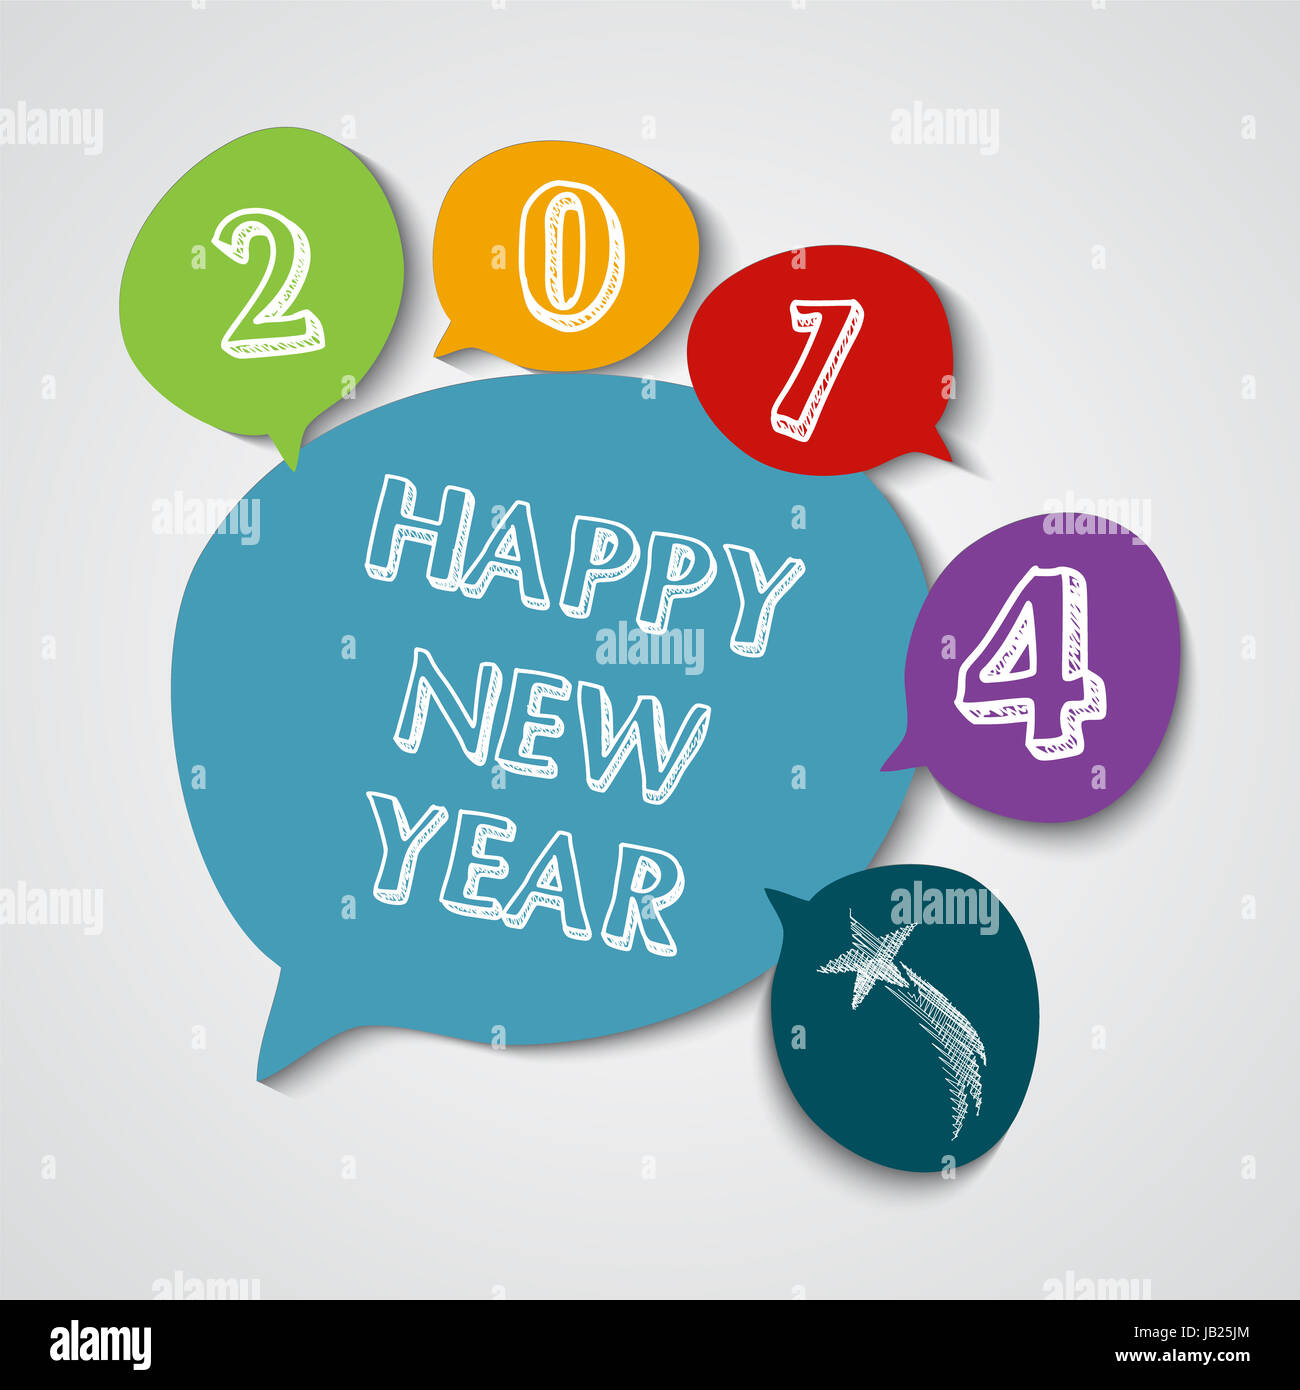 Happy new year 2014 social media bubble colors greeting card stock happy new year 2014 social media bubble colors greeting card illustration eps10 vector file with transparency layers m4hsunfo